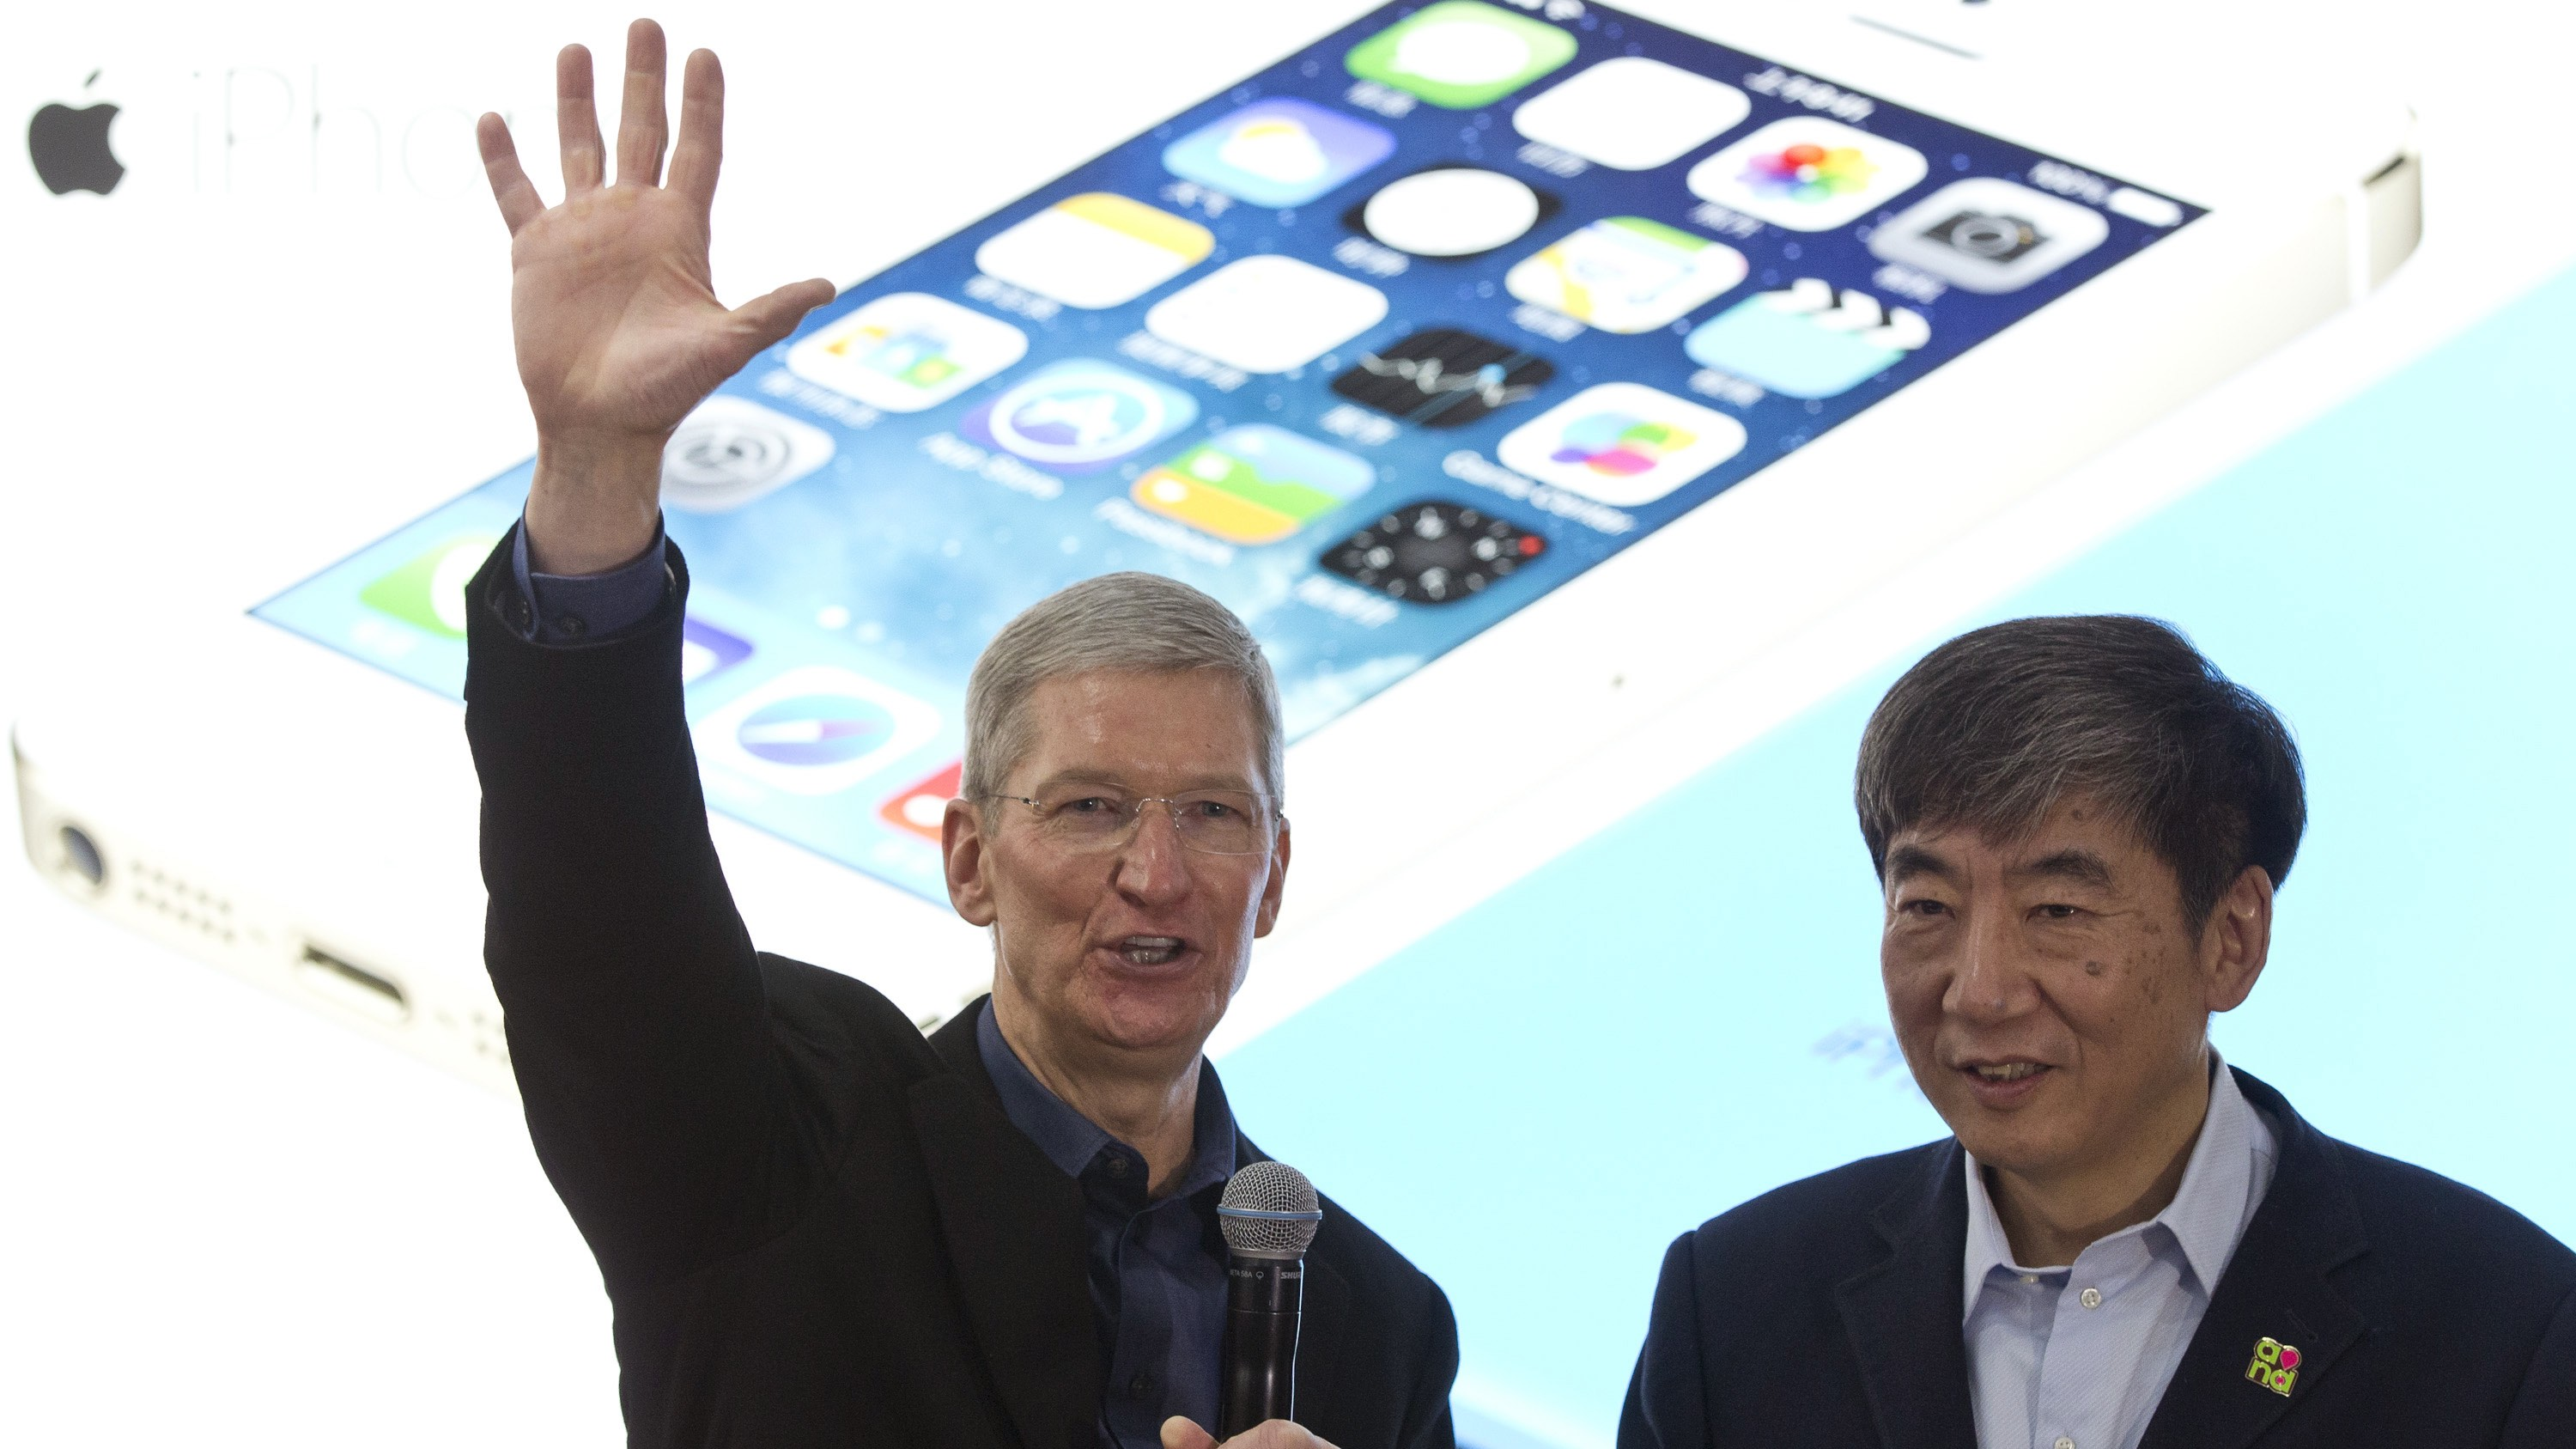 Apple's CEO Tim Cook, left, gestures as China Mobile's chairman Xi Guohua looks on during a promotional event that marks the opening day of sales of China Mobile's 4G iPhone 5s and iPhone 5c at a shop of the world's largest mobile phone operator in Beijing, China, Friday, Jan. 17, 2014. (AP Photo/Alexander F. Yuan)